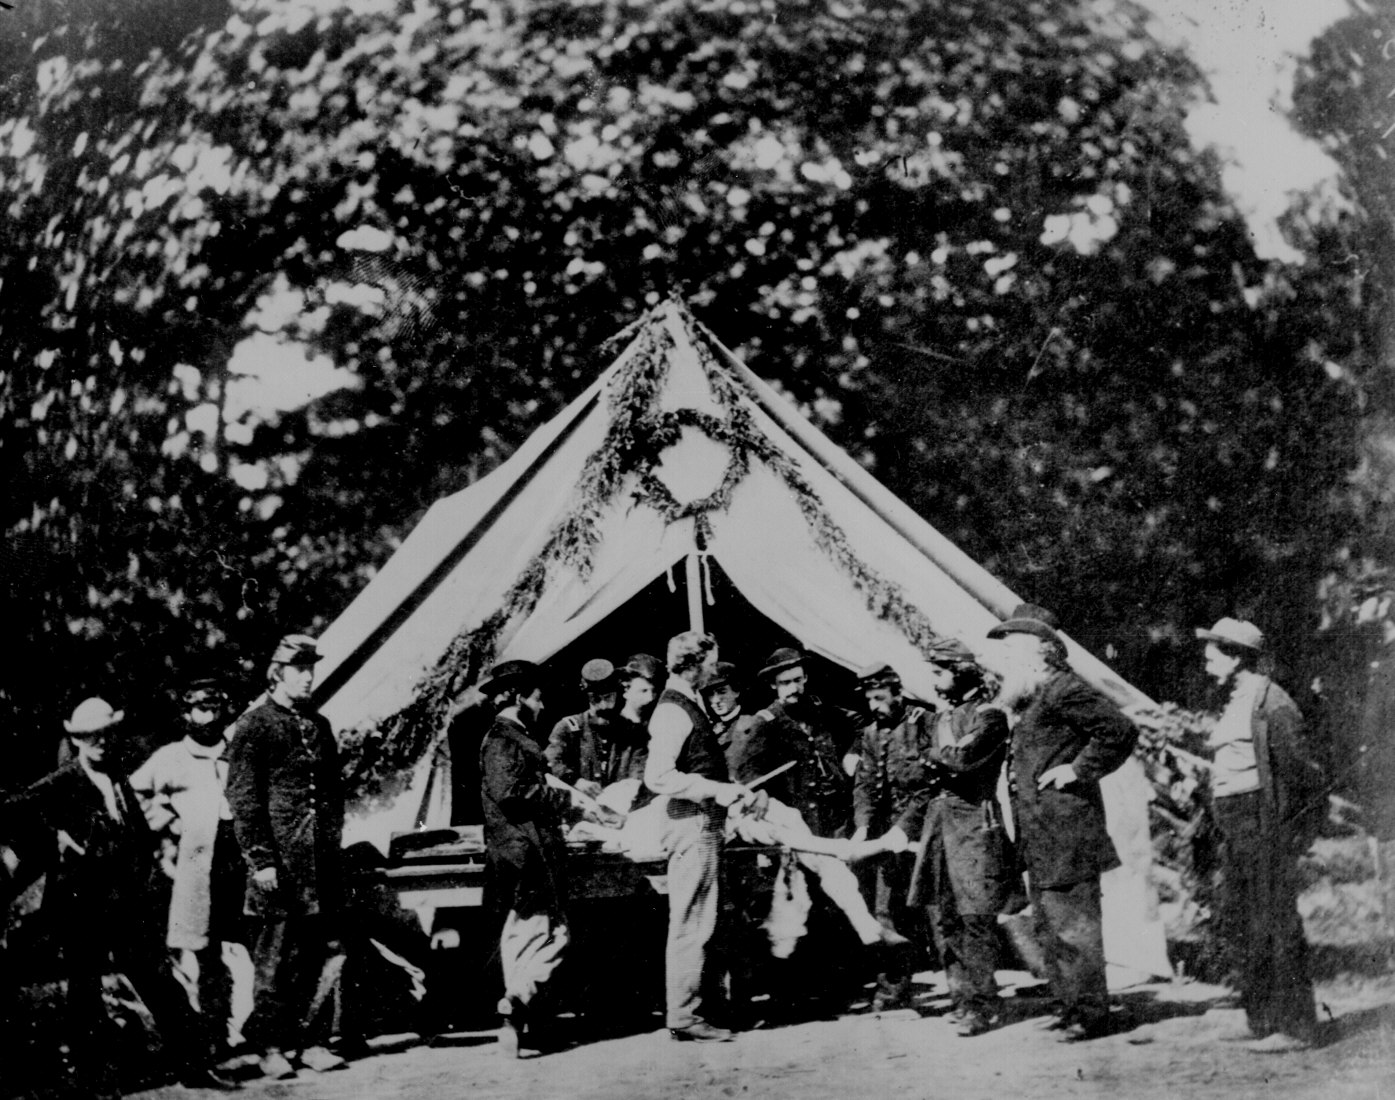 Amputation Being Performed In A Hospital Tent Gettysburg July 1863